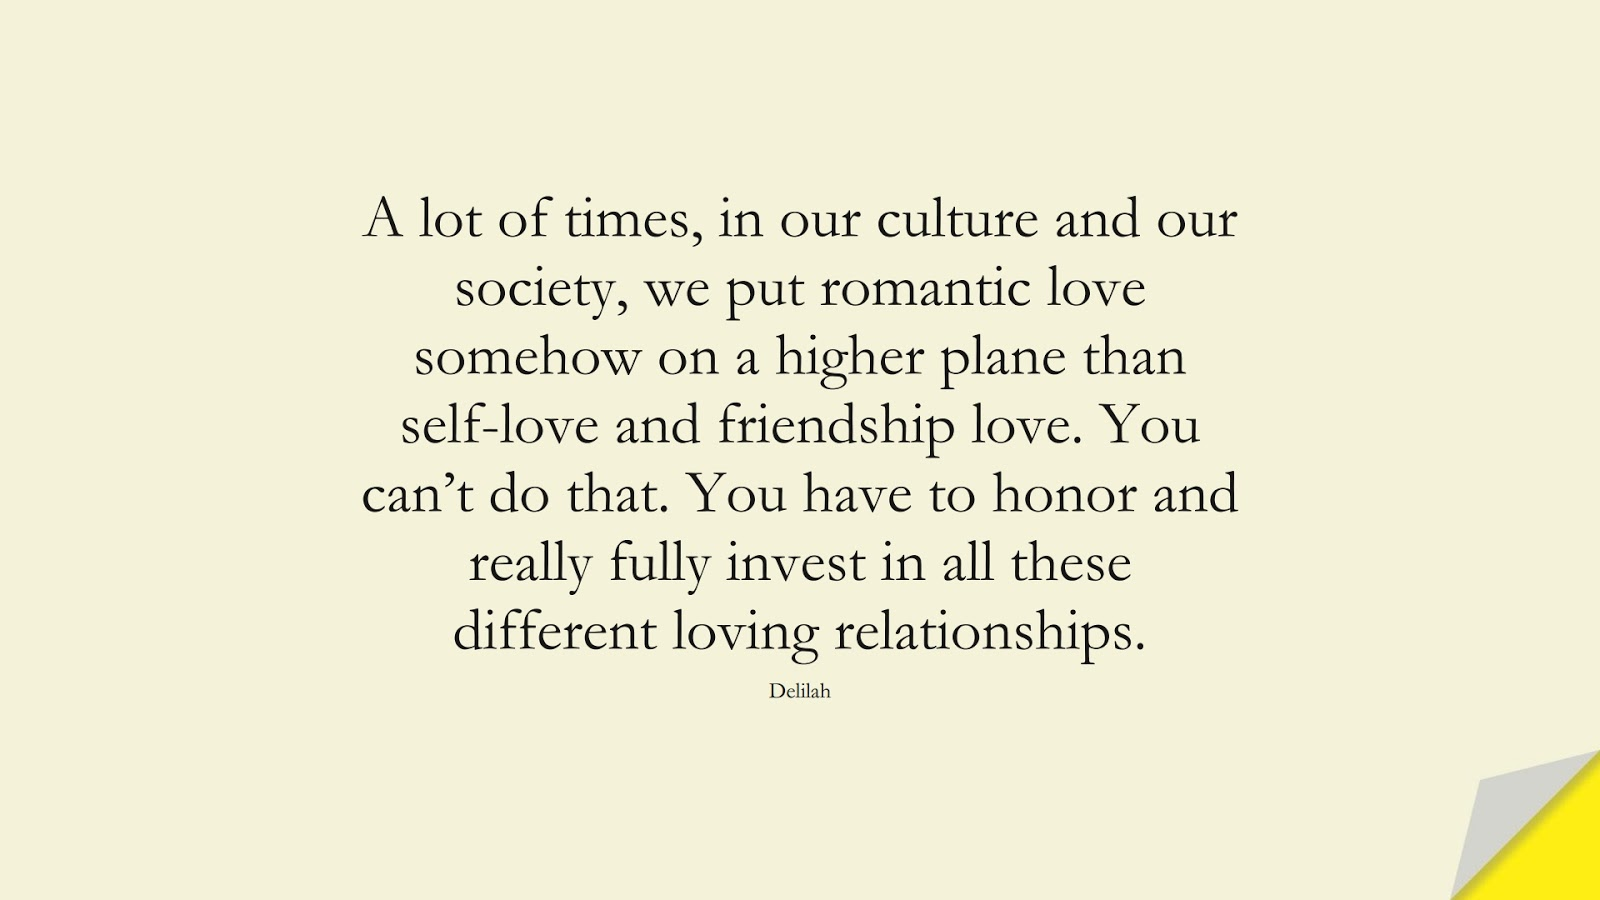 A lot of times, in our culture and our society, we put romantic love somehow on a higher plane than self-love and friendship love. You can't do that. You have to honor and really fully invest in all these different loving relationships. (Delilah);  #InspirationalQuotes